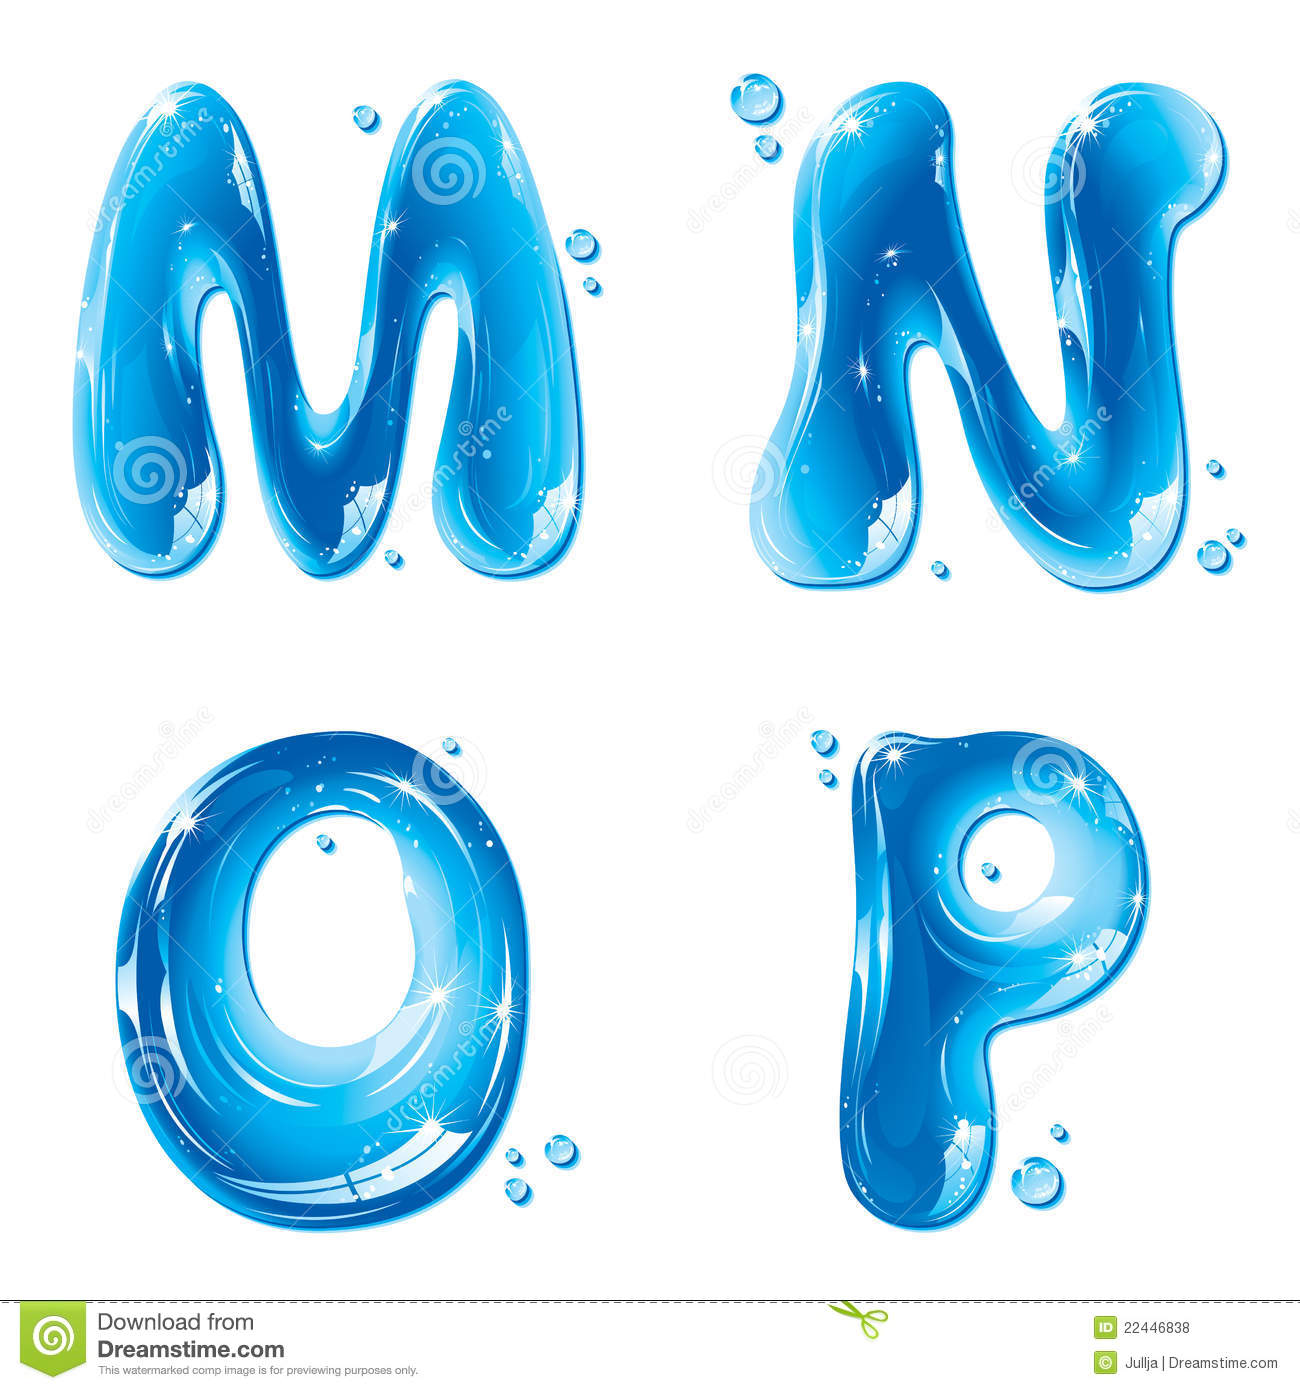 14 Liquid Water Letters Design Images - Liquid Water ...